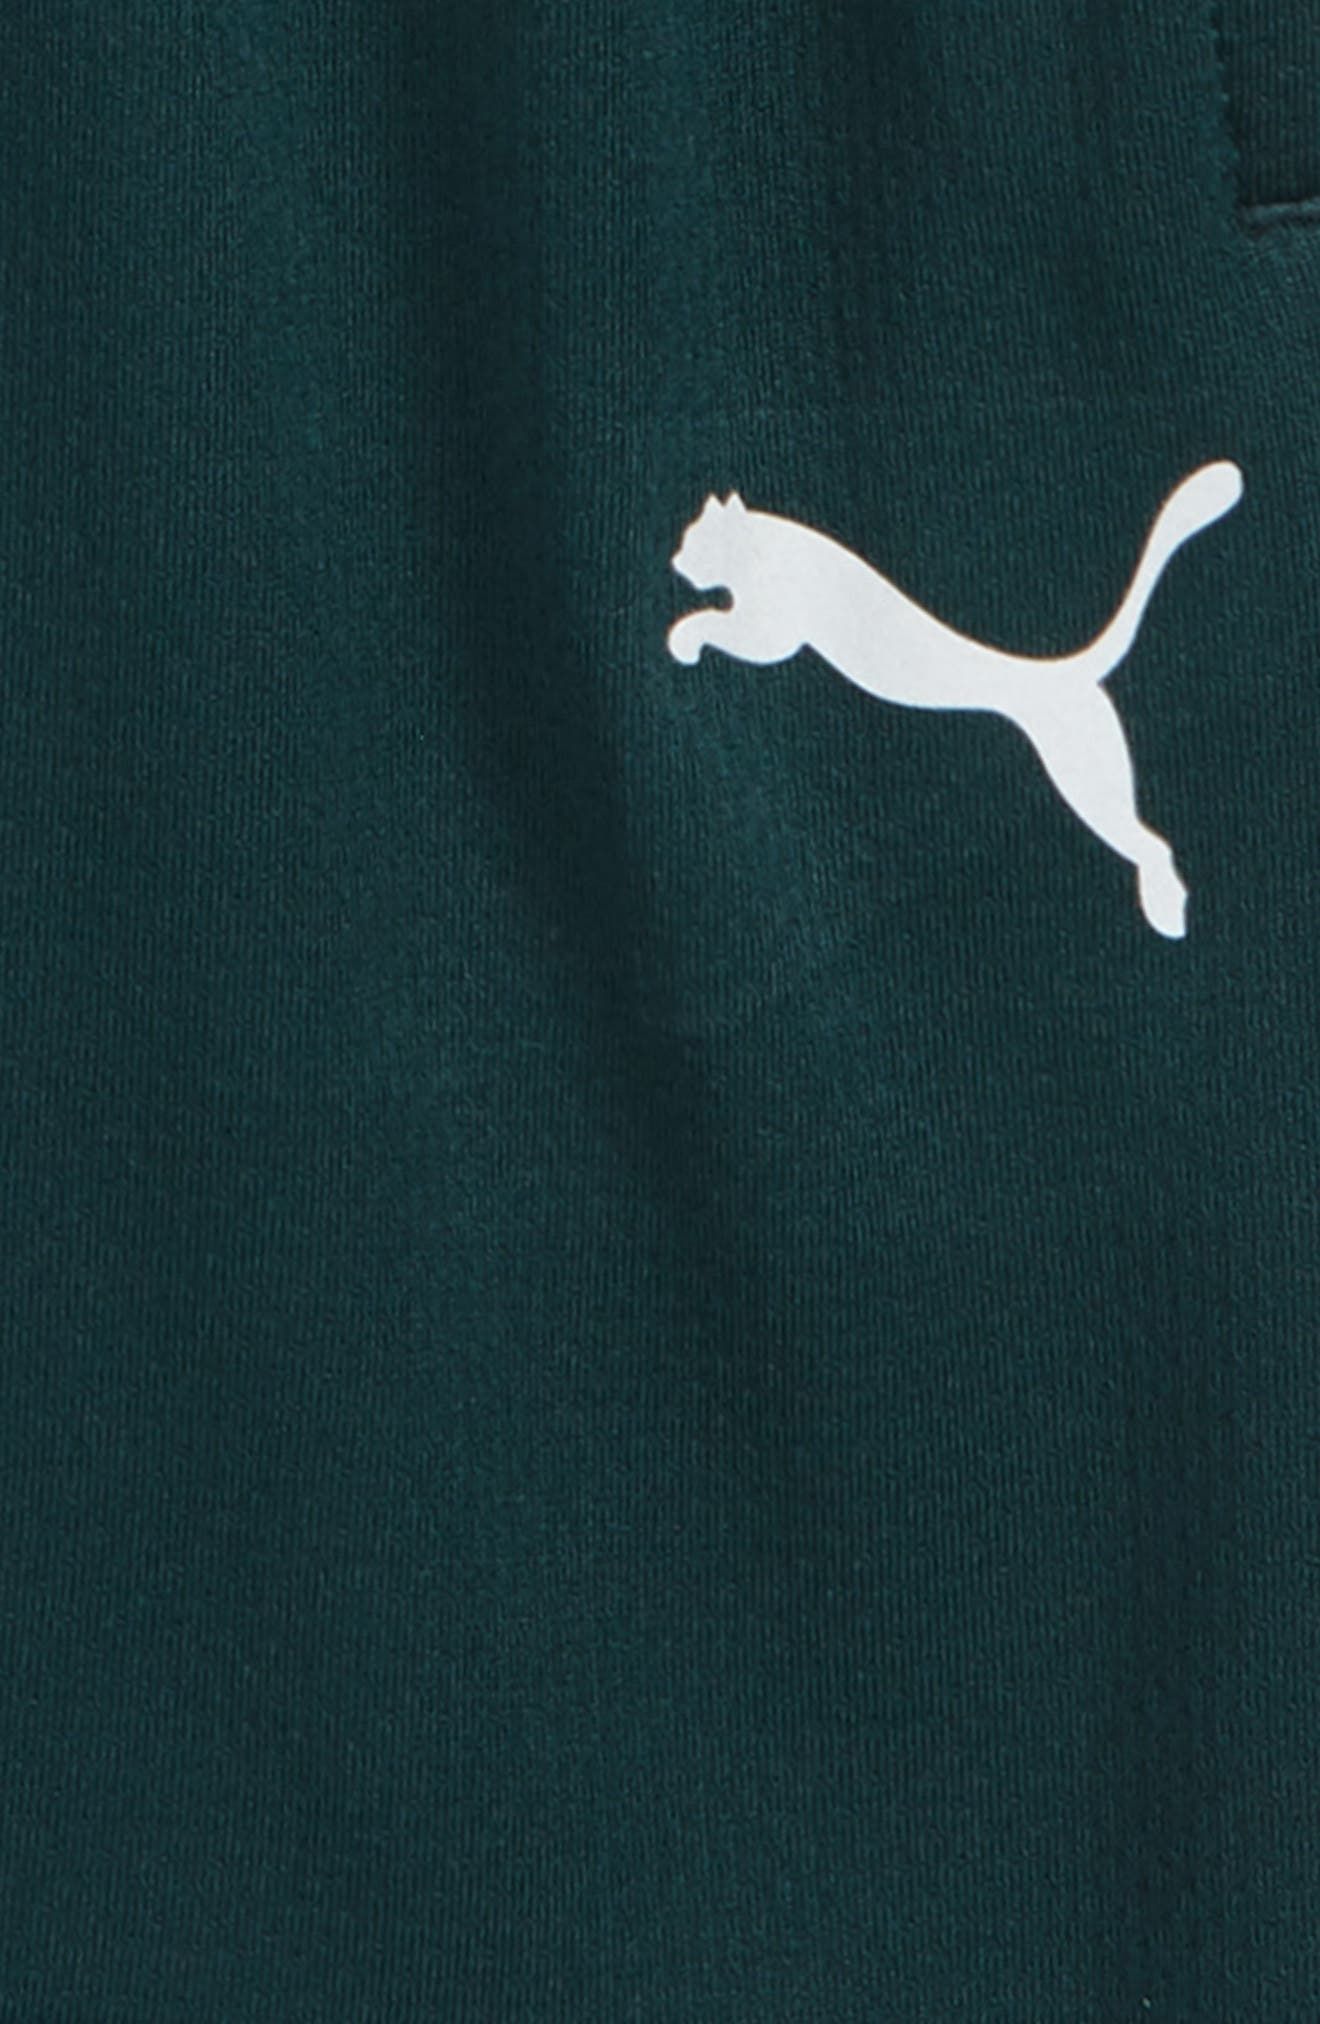 PUMA,                             Logo Performance Mesh Shorts,                             Alternate thumbnail 2, color,                             300